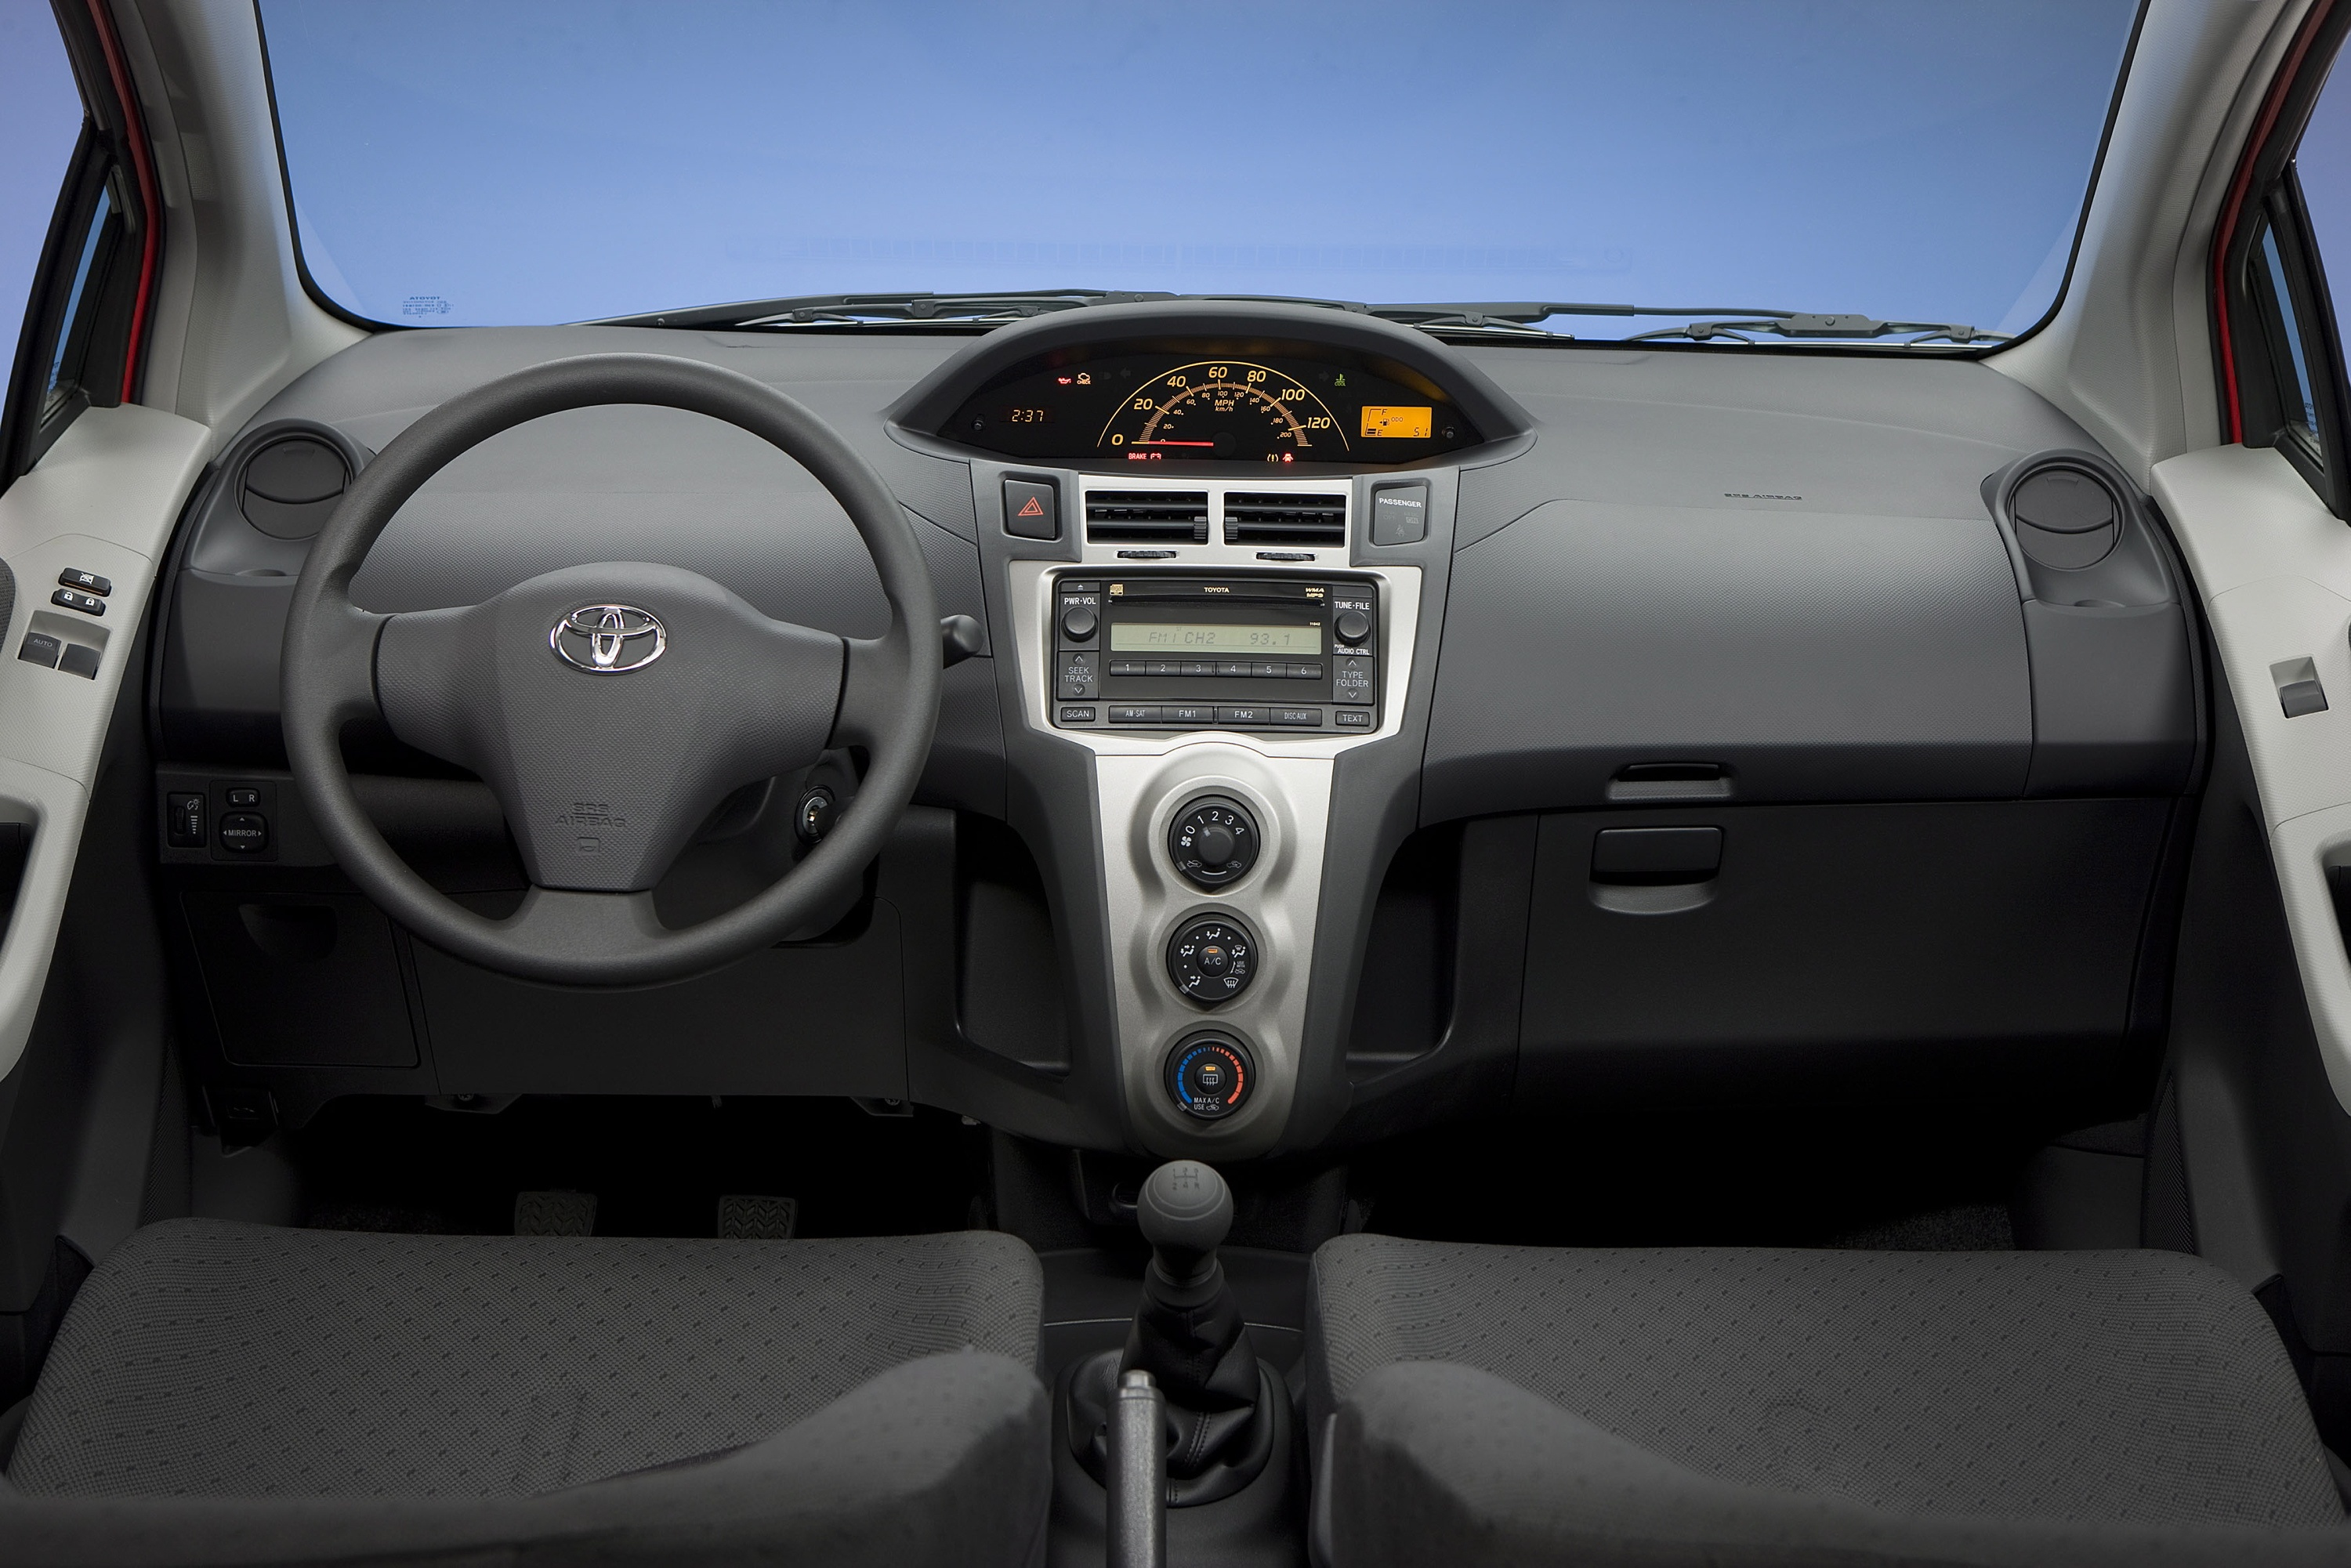 2009 Toyota Yaris: Grassroots Motorsports New Car Reviews